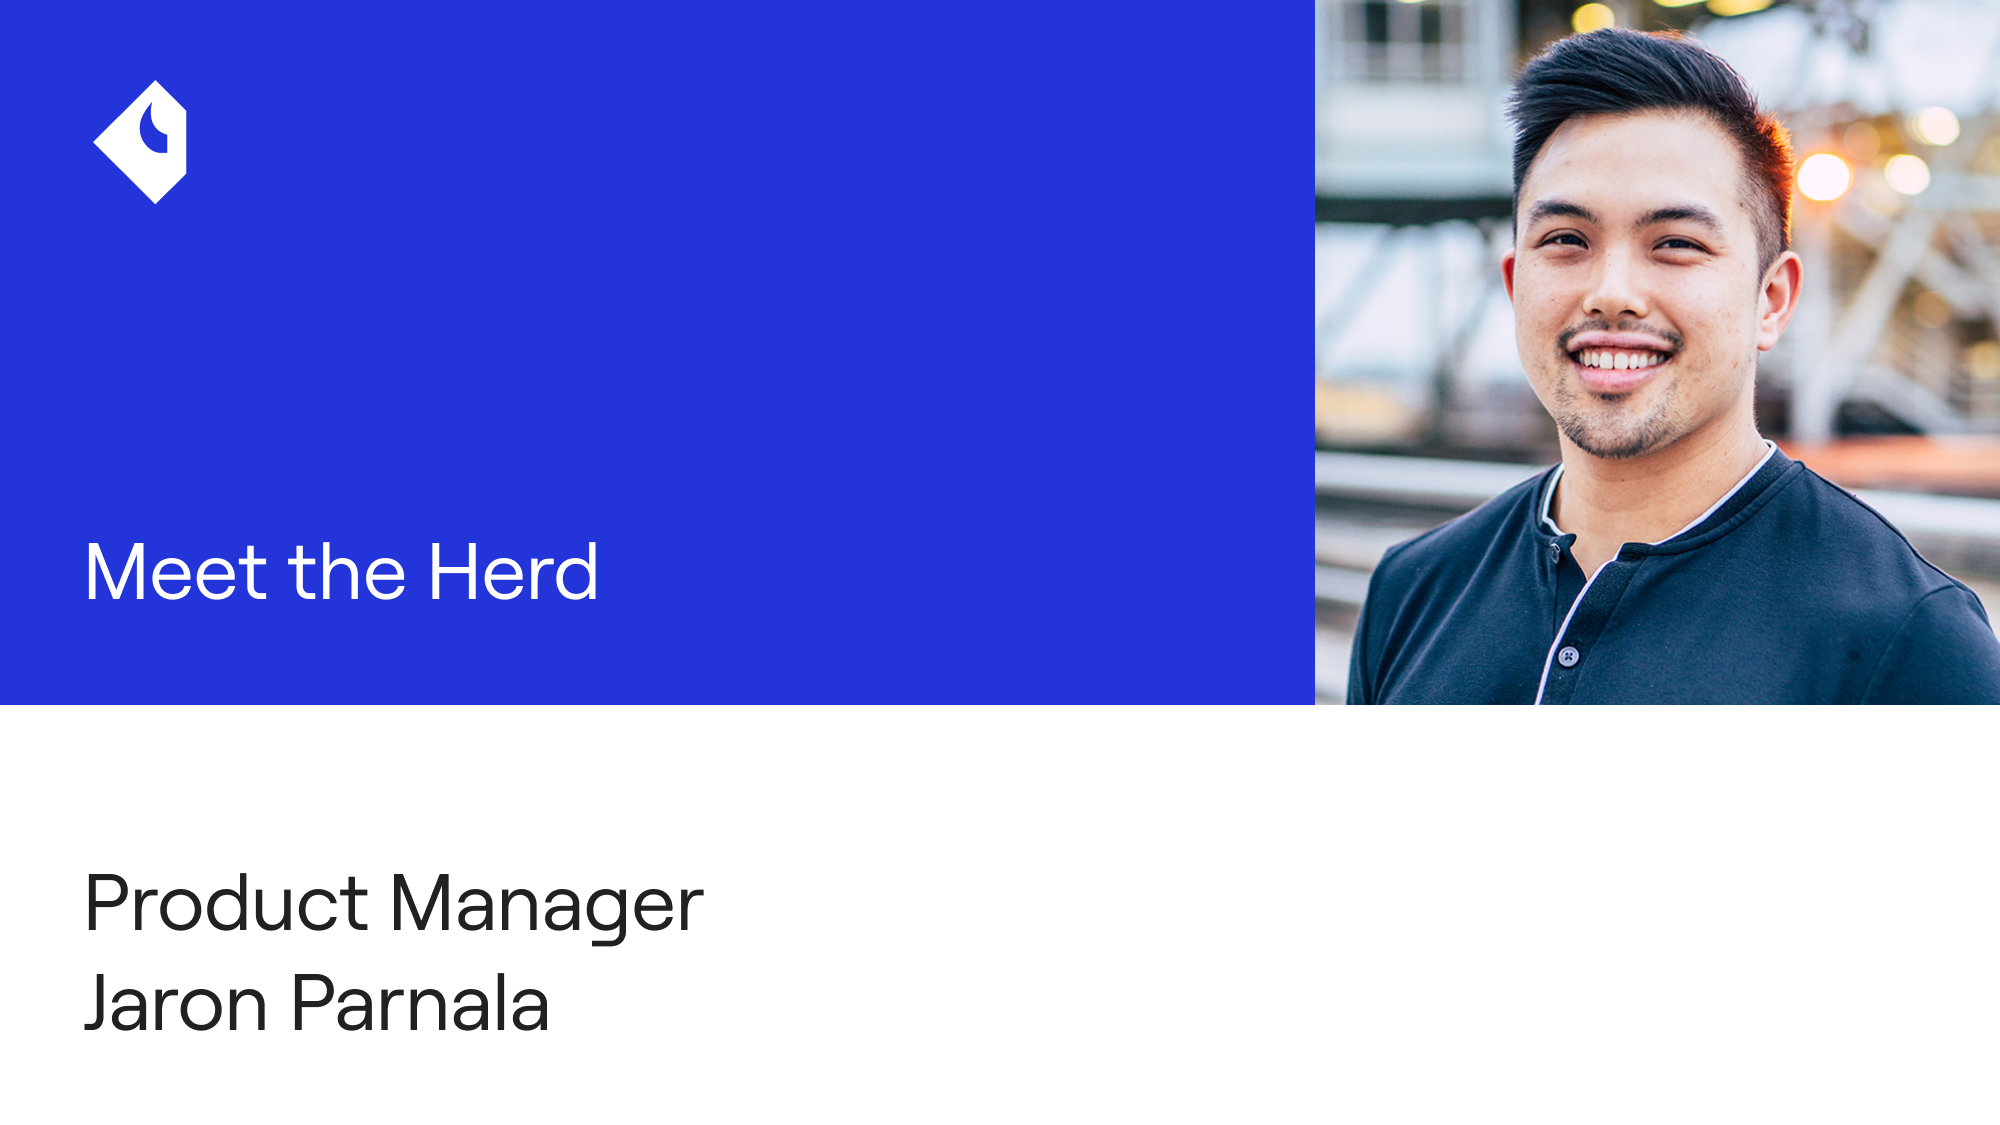 Meet the Herd: Product Manager Jaron Parnala